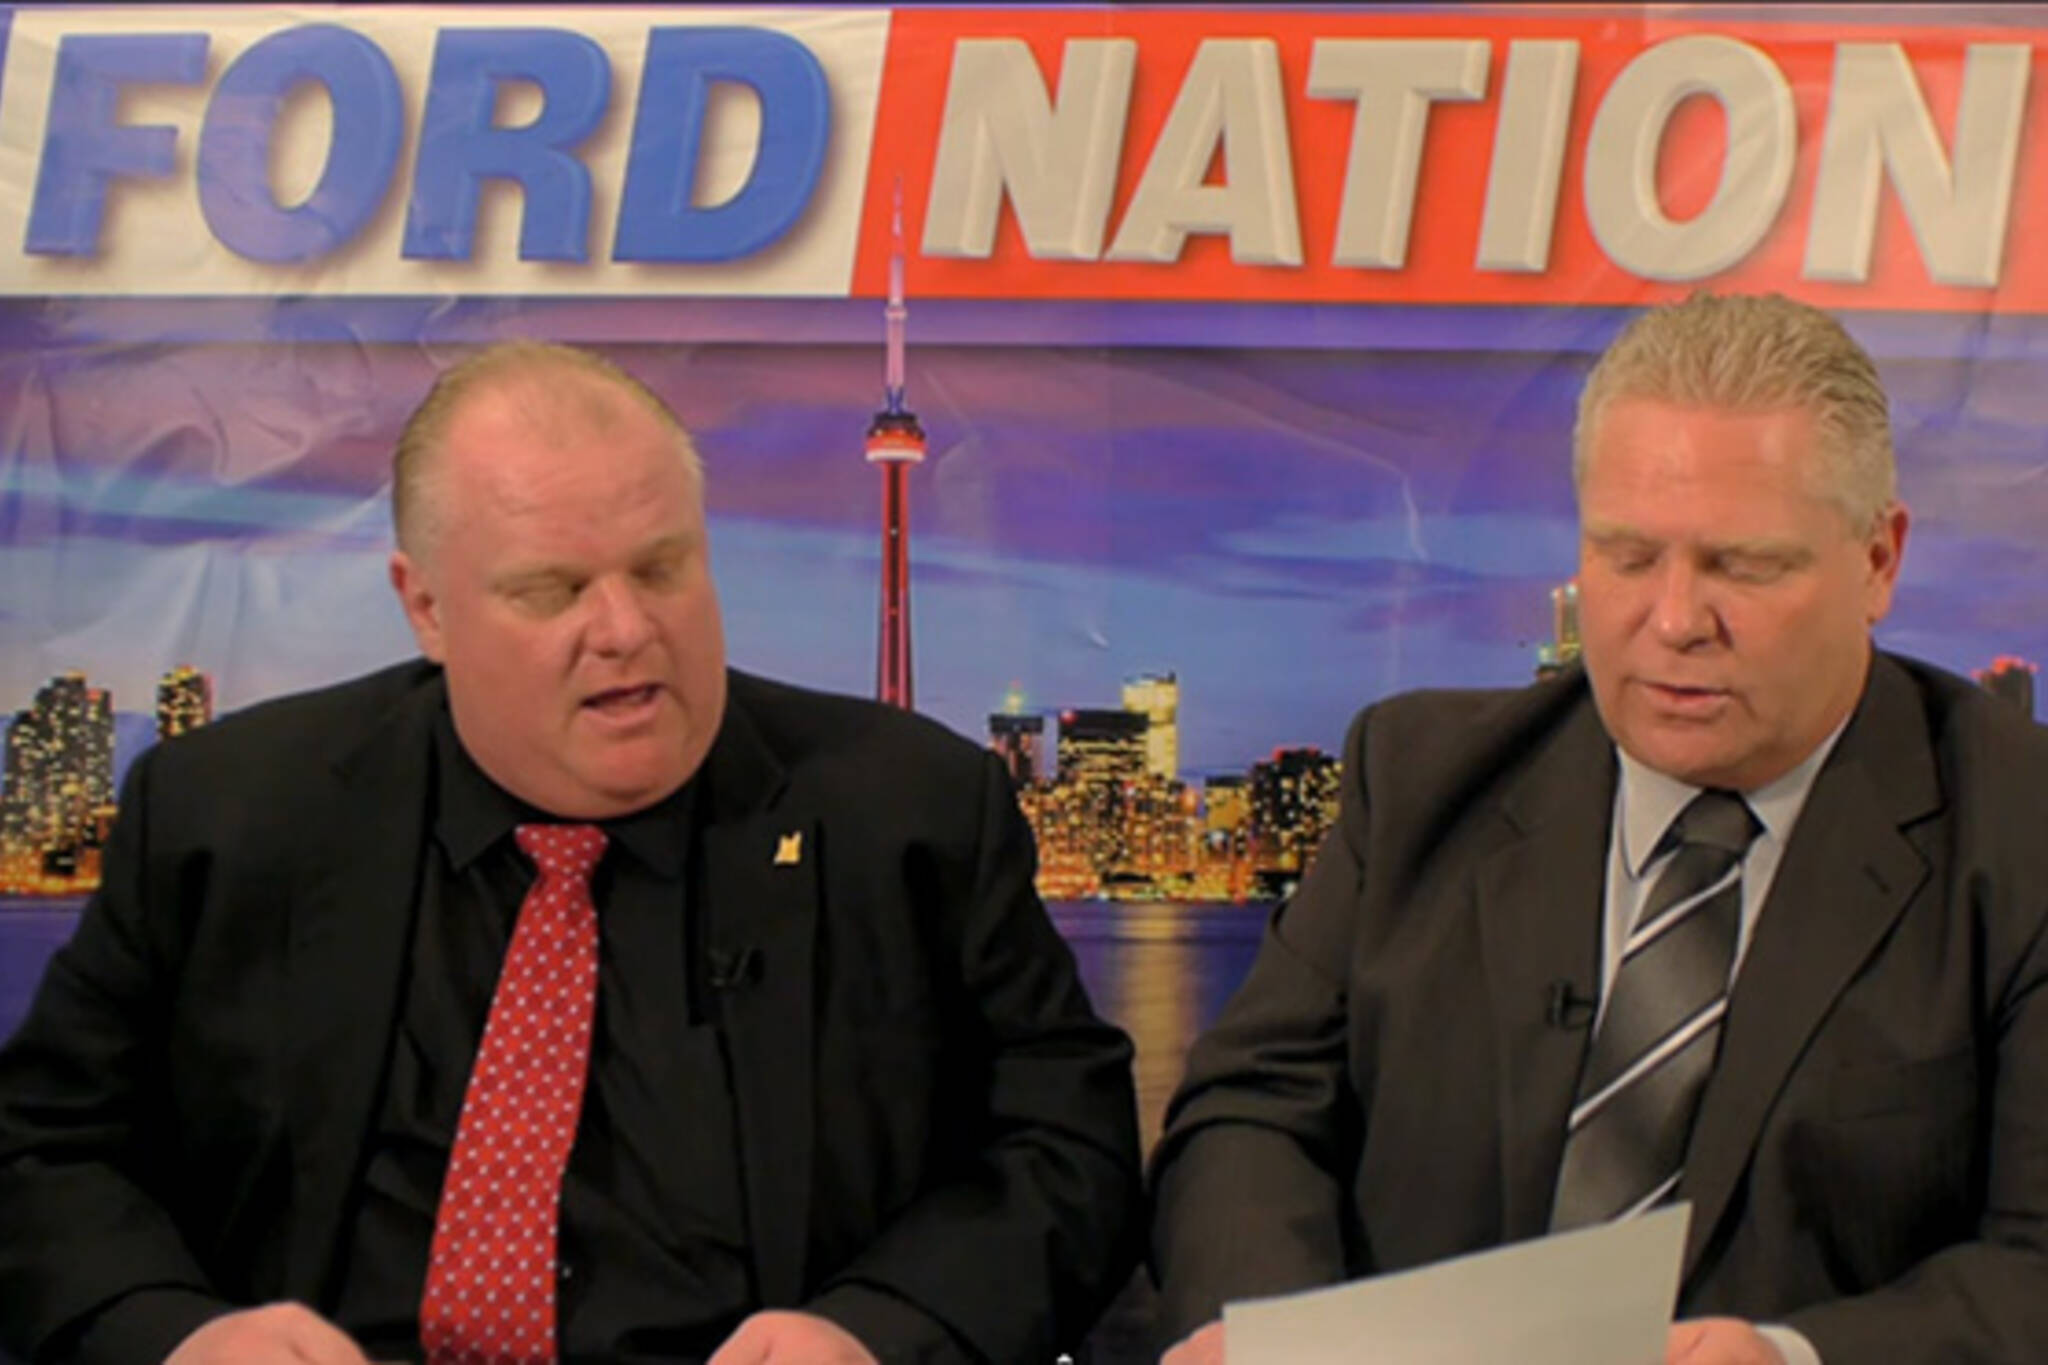 Ford Nation videos